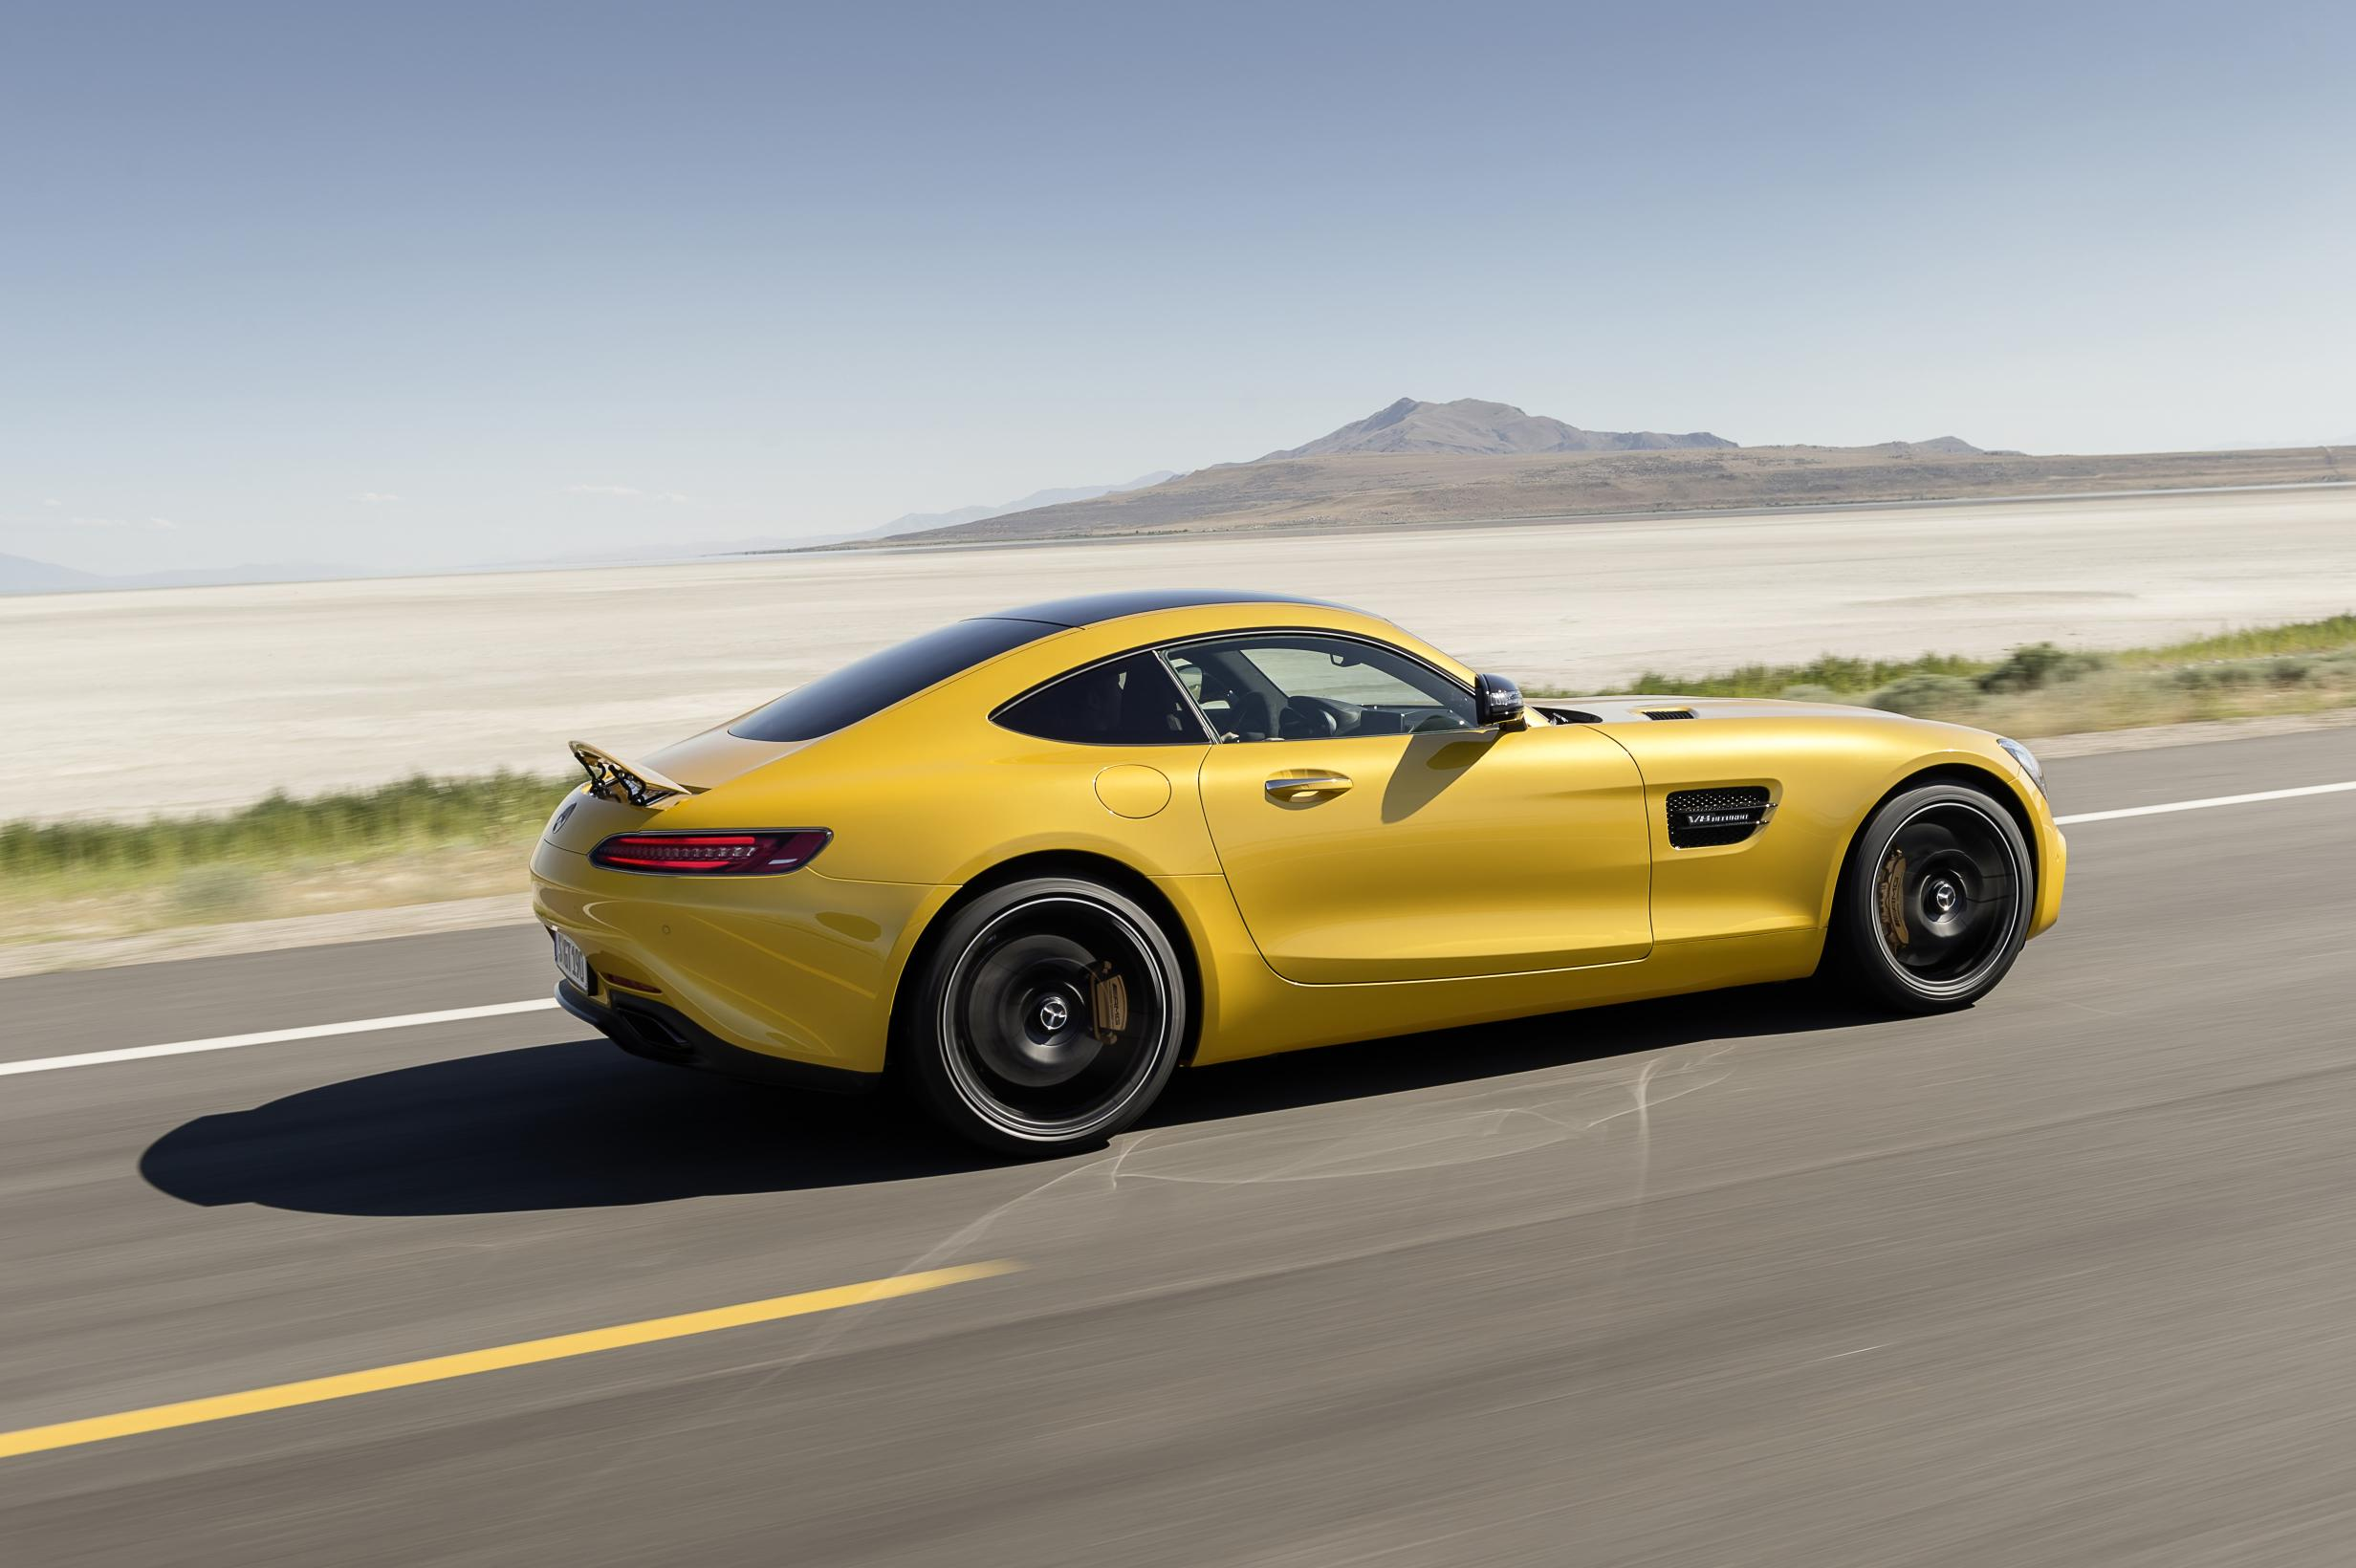 https://s1.cdn.autoevolution.com/images/news/mercedes-amg-gt-uk-pricing-starts-at-97195-photo-gallery-88873_1.jpg